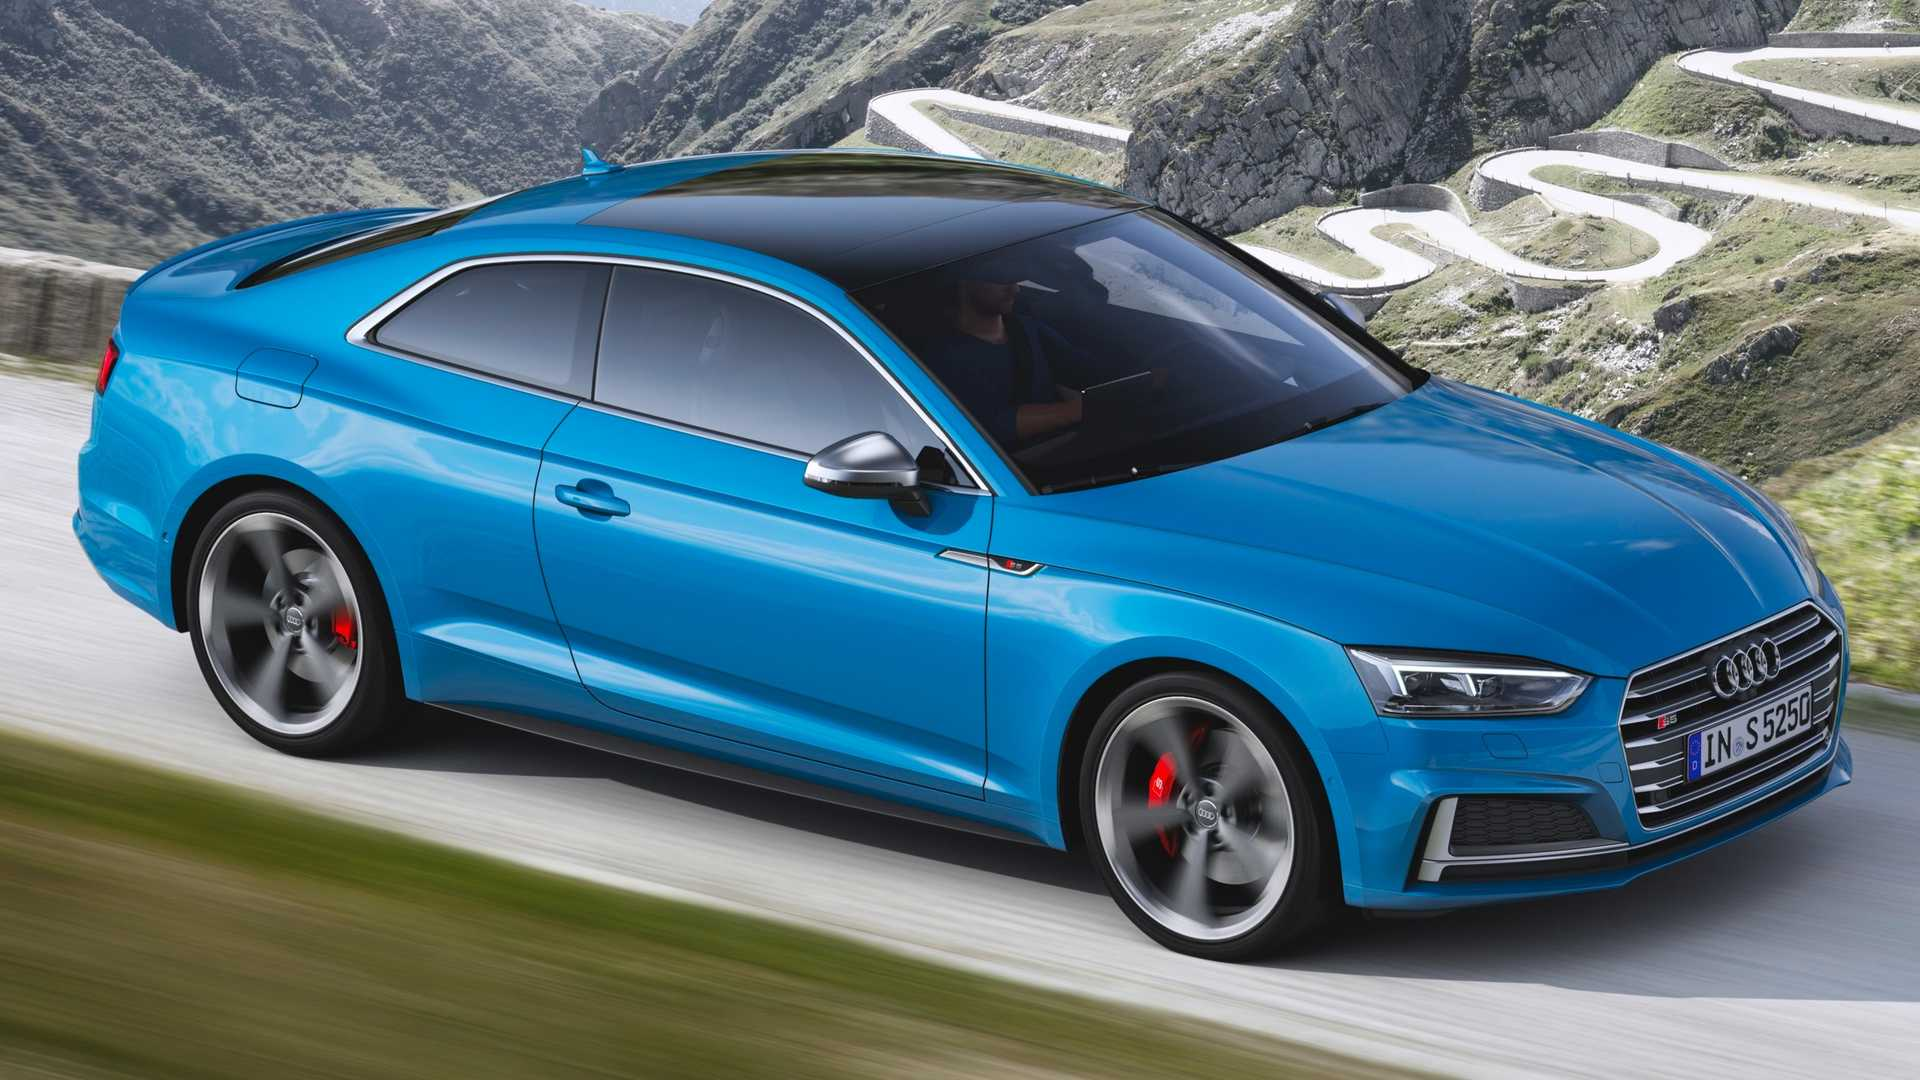 45 All New Audi Vorsprung 2020 Release Date